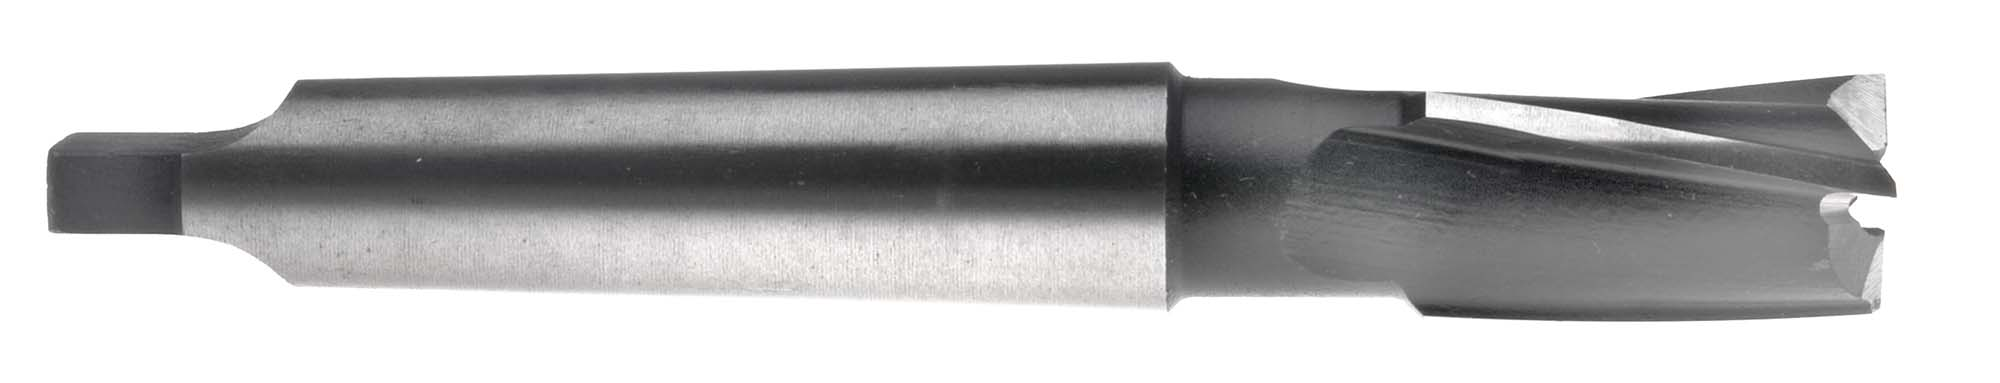 "1-13/16"" Taper Shank Counterbore, Interchangeable Pilot Type, High Speed Steel"